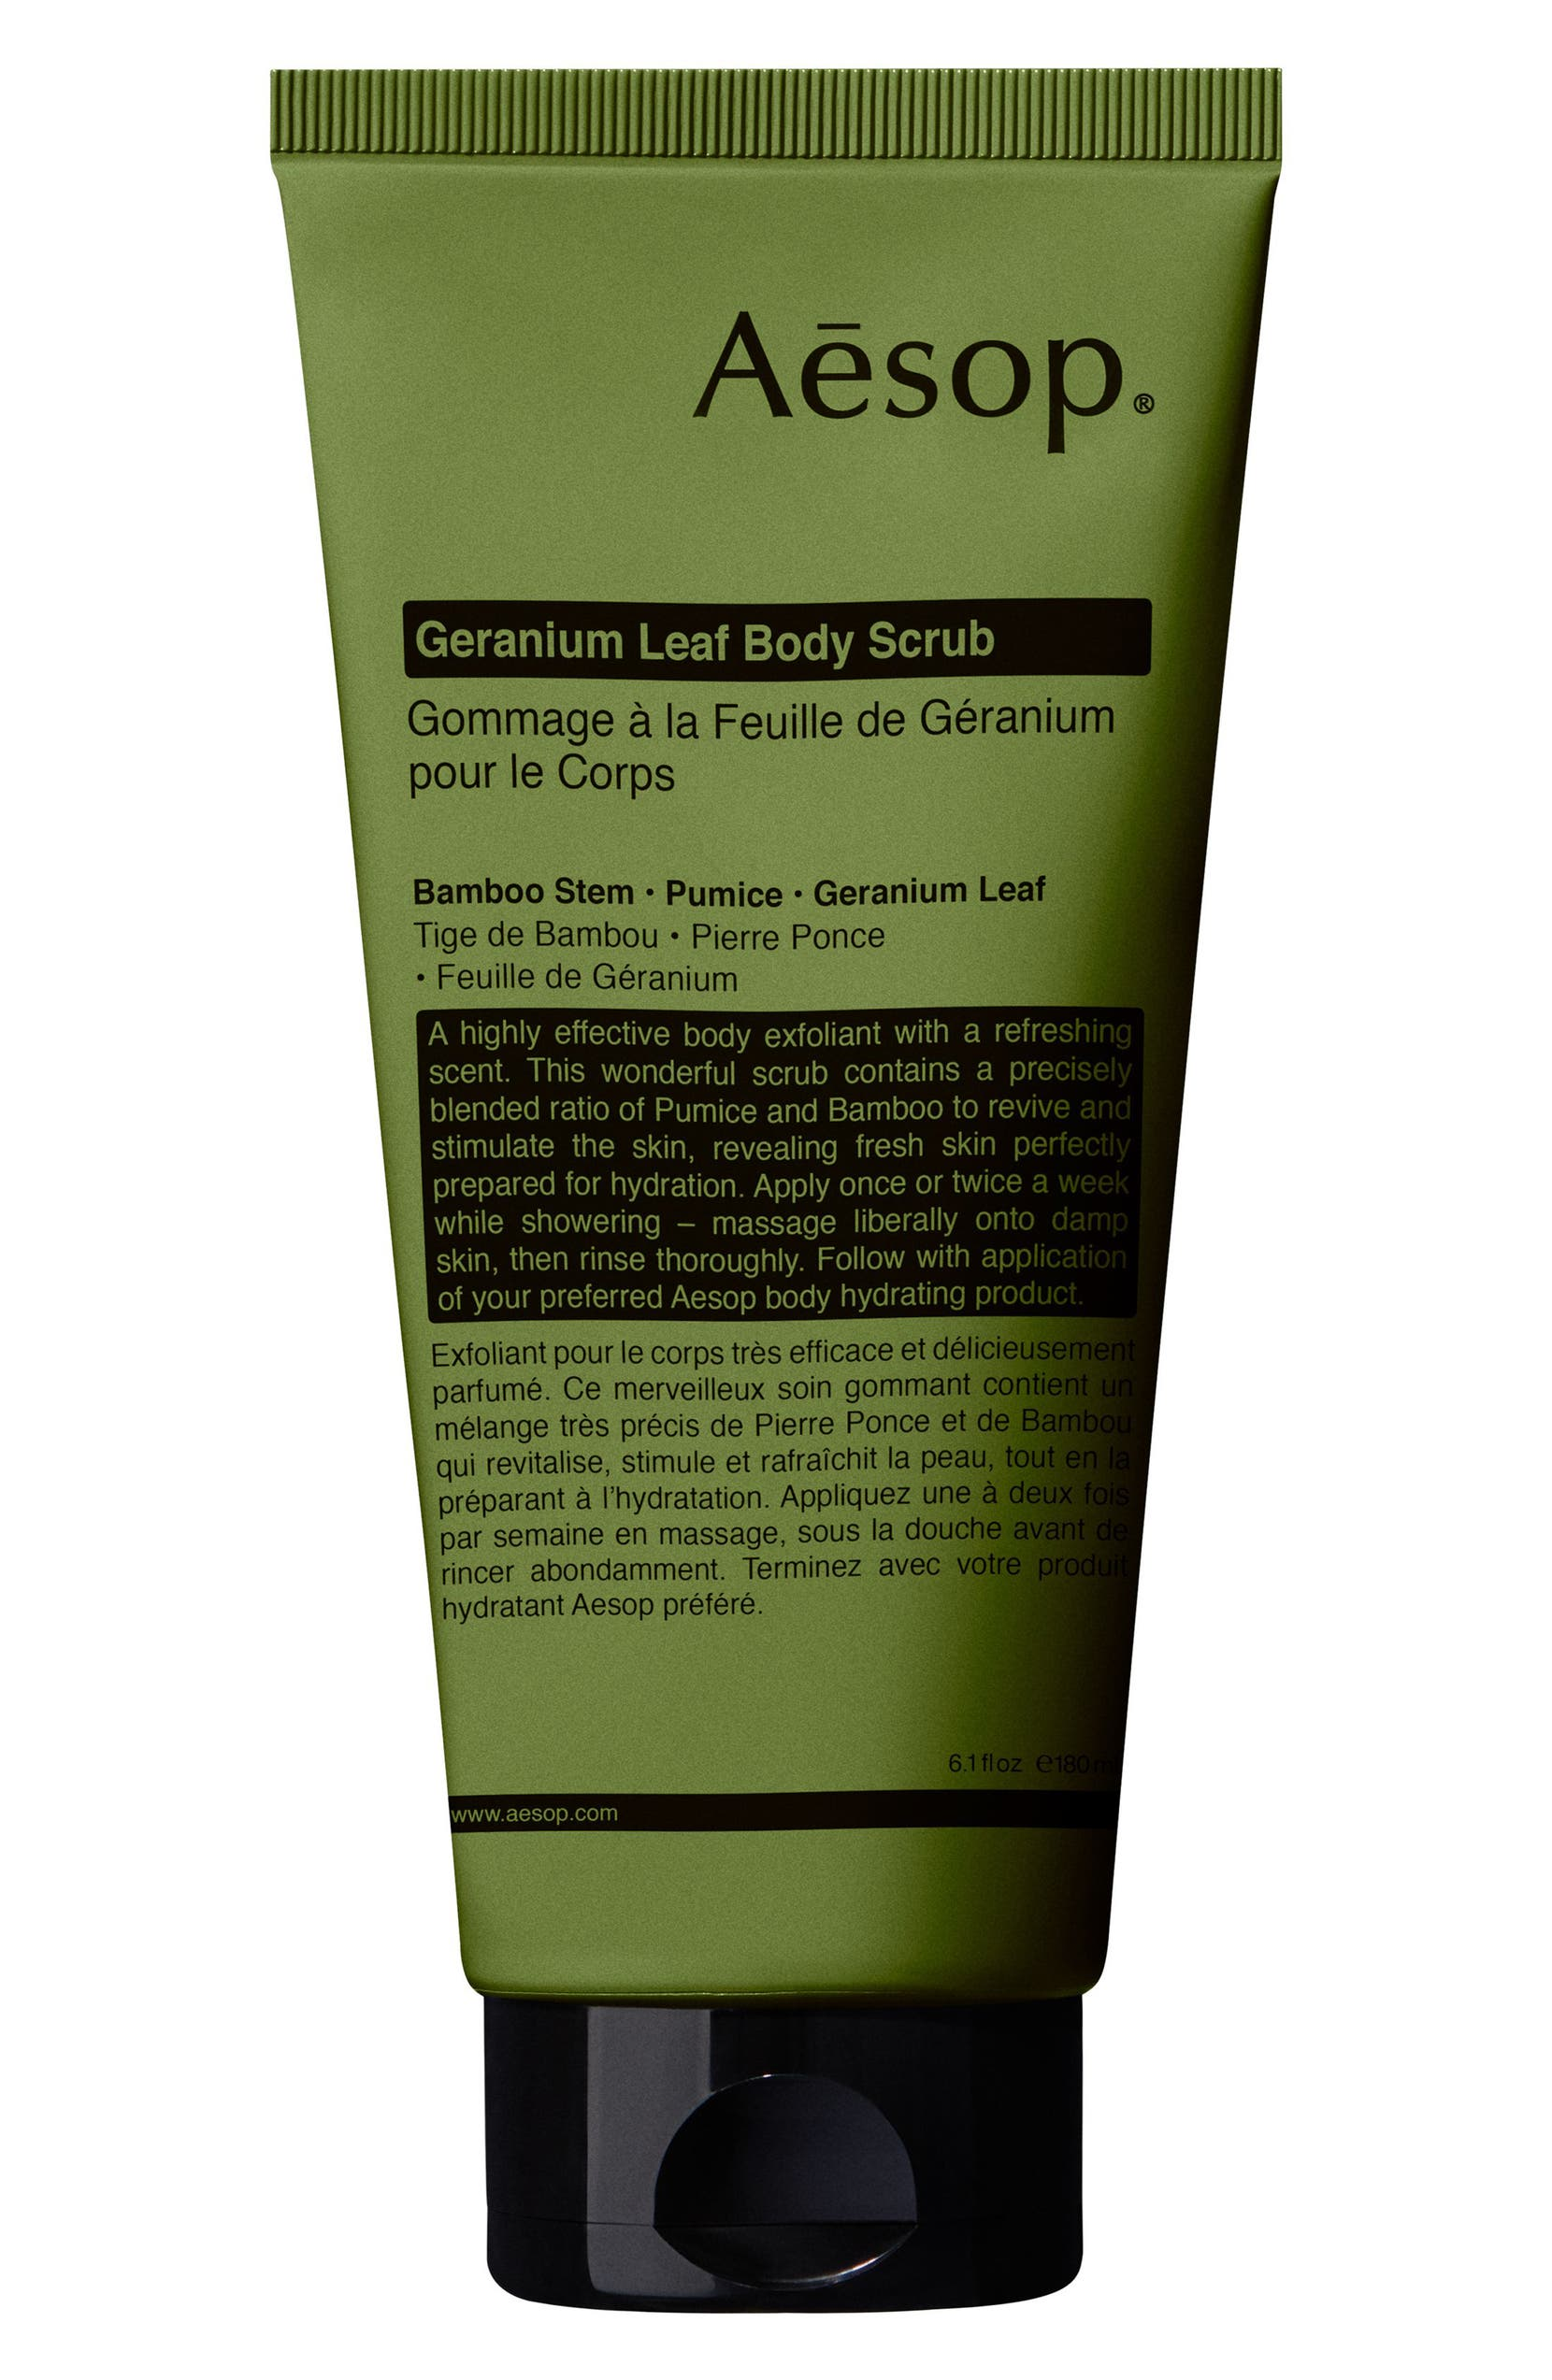 Image result for Aesop Geranium Leaf Body Scrub